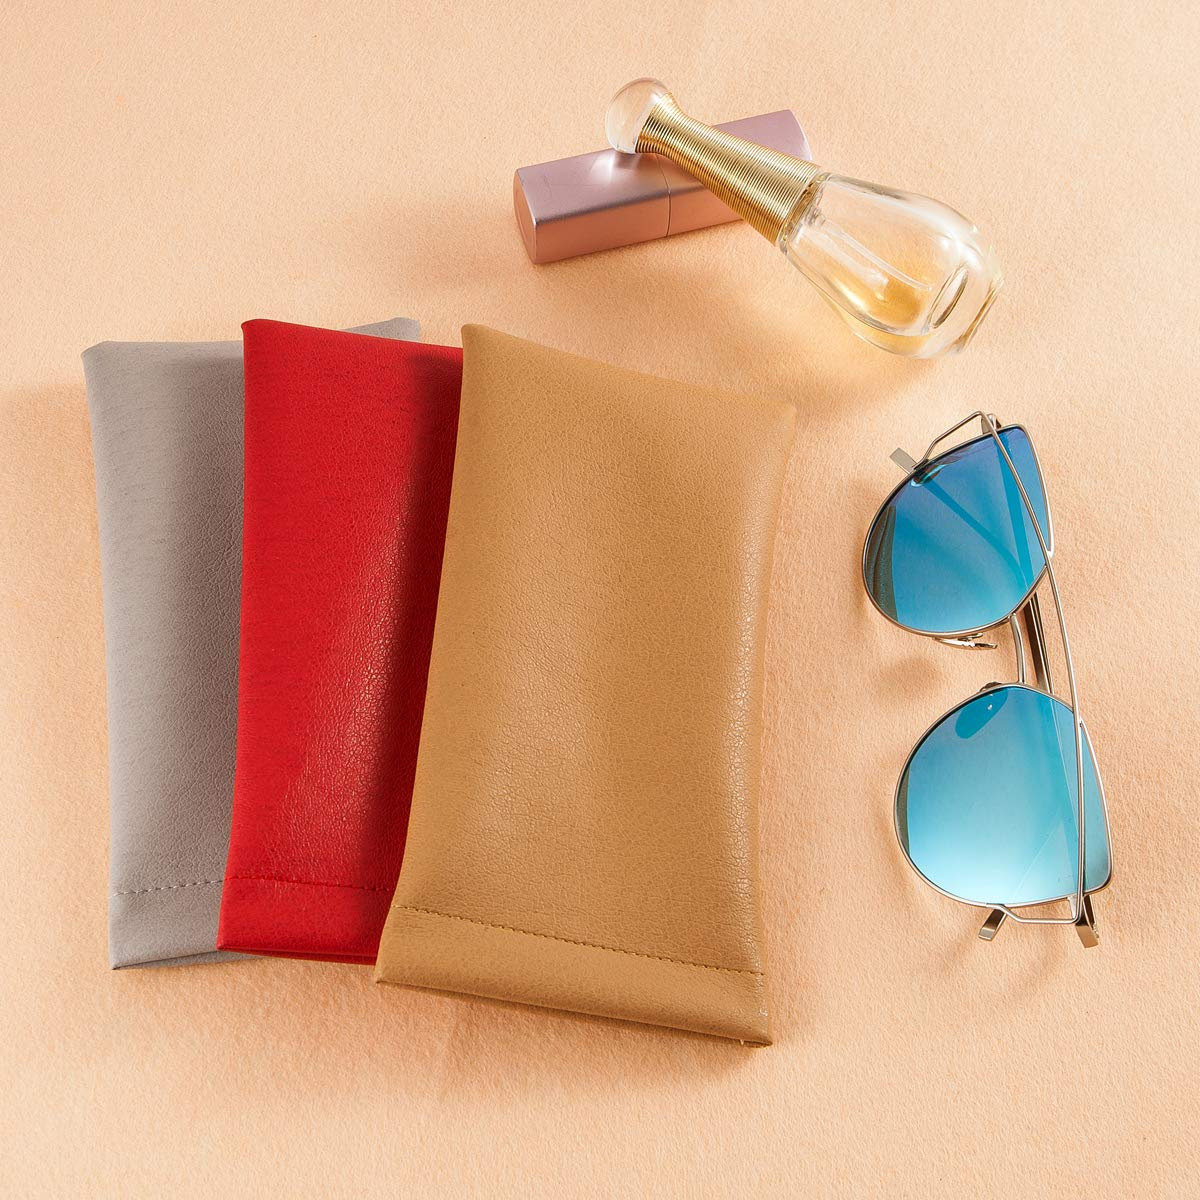 Sunglasses Case Squeeze Top 3Pack Soft Glasses Pouch Eyeglasses Storage Bag Multiuse